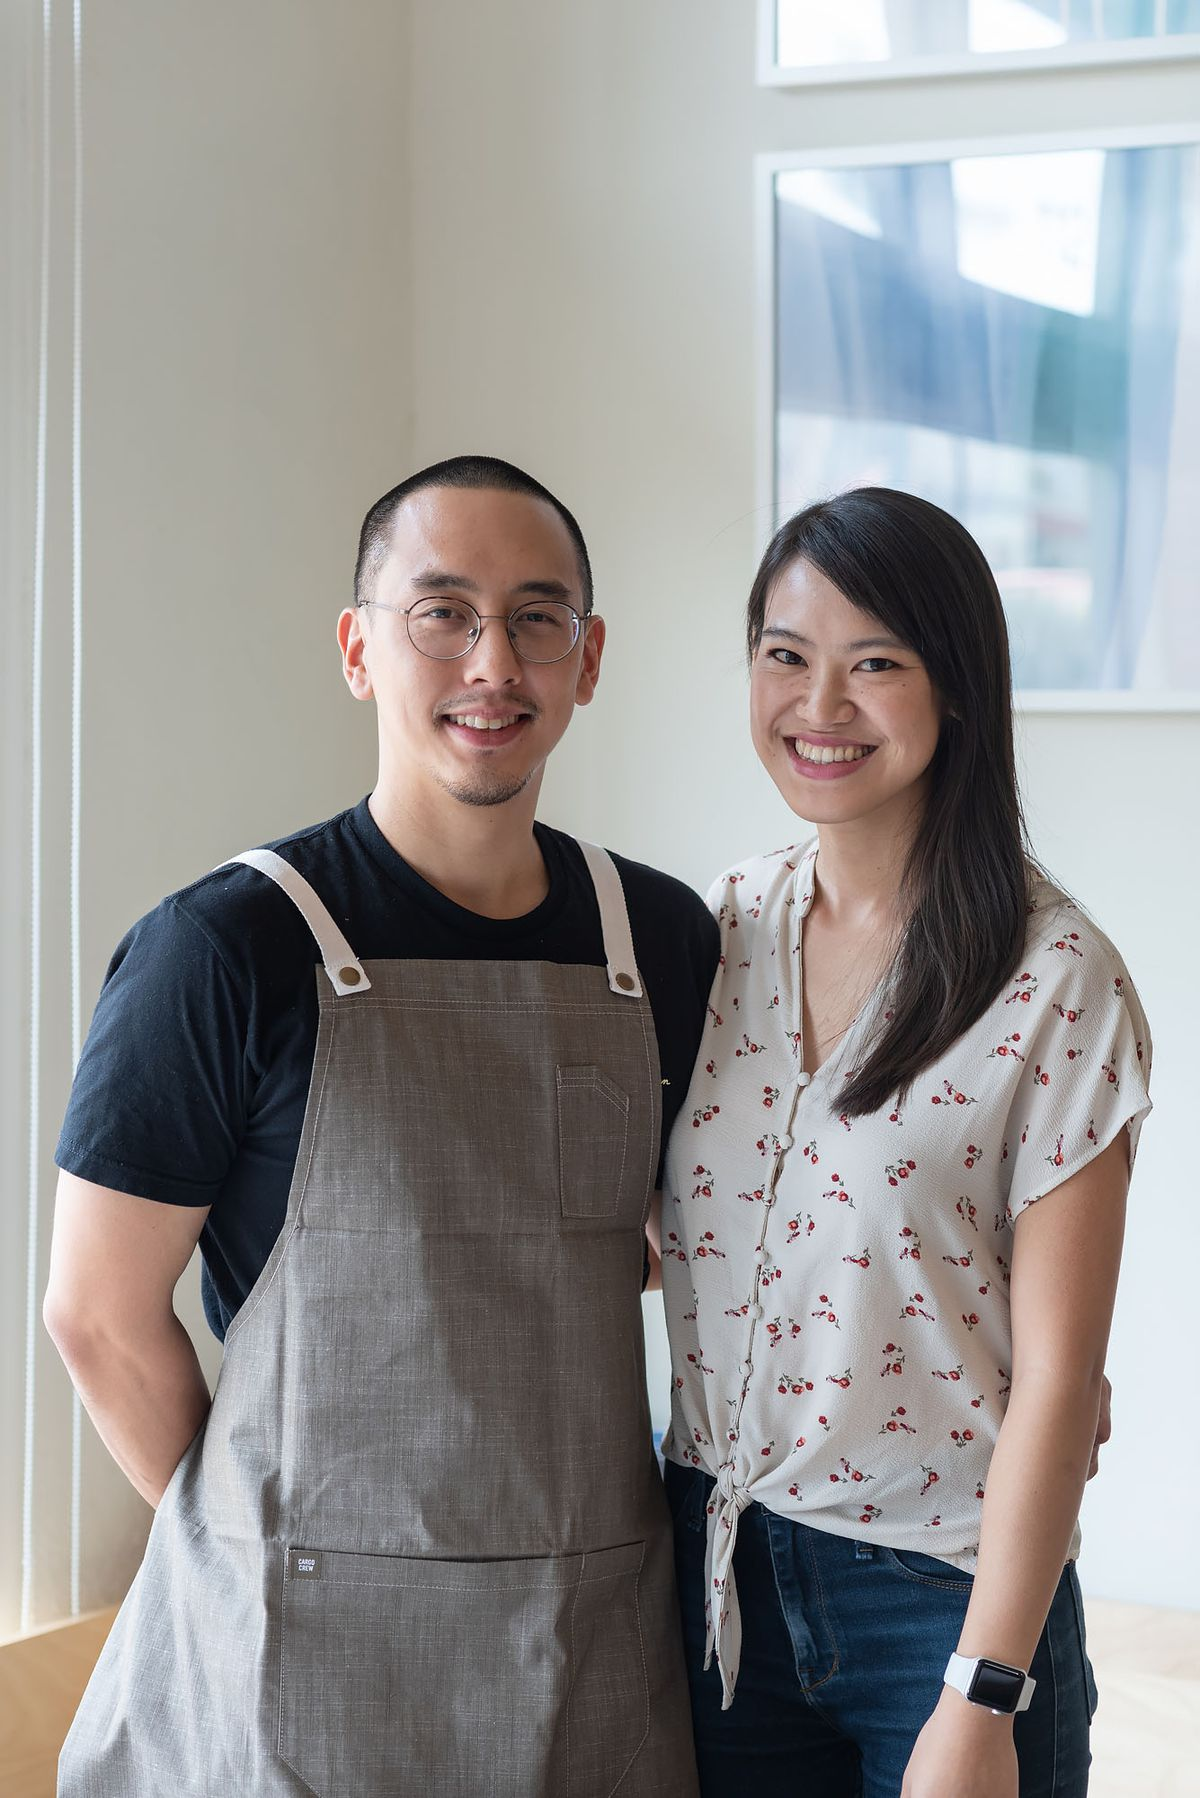 A portrait of the restaurant's owners standing side by side and smiling. Chris Yang, on the left, wears an apron. Maggie Ho, on the right, has long dark hair and wears a white and red shirt.